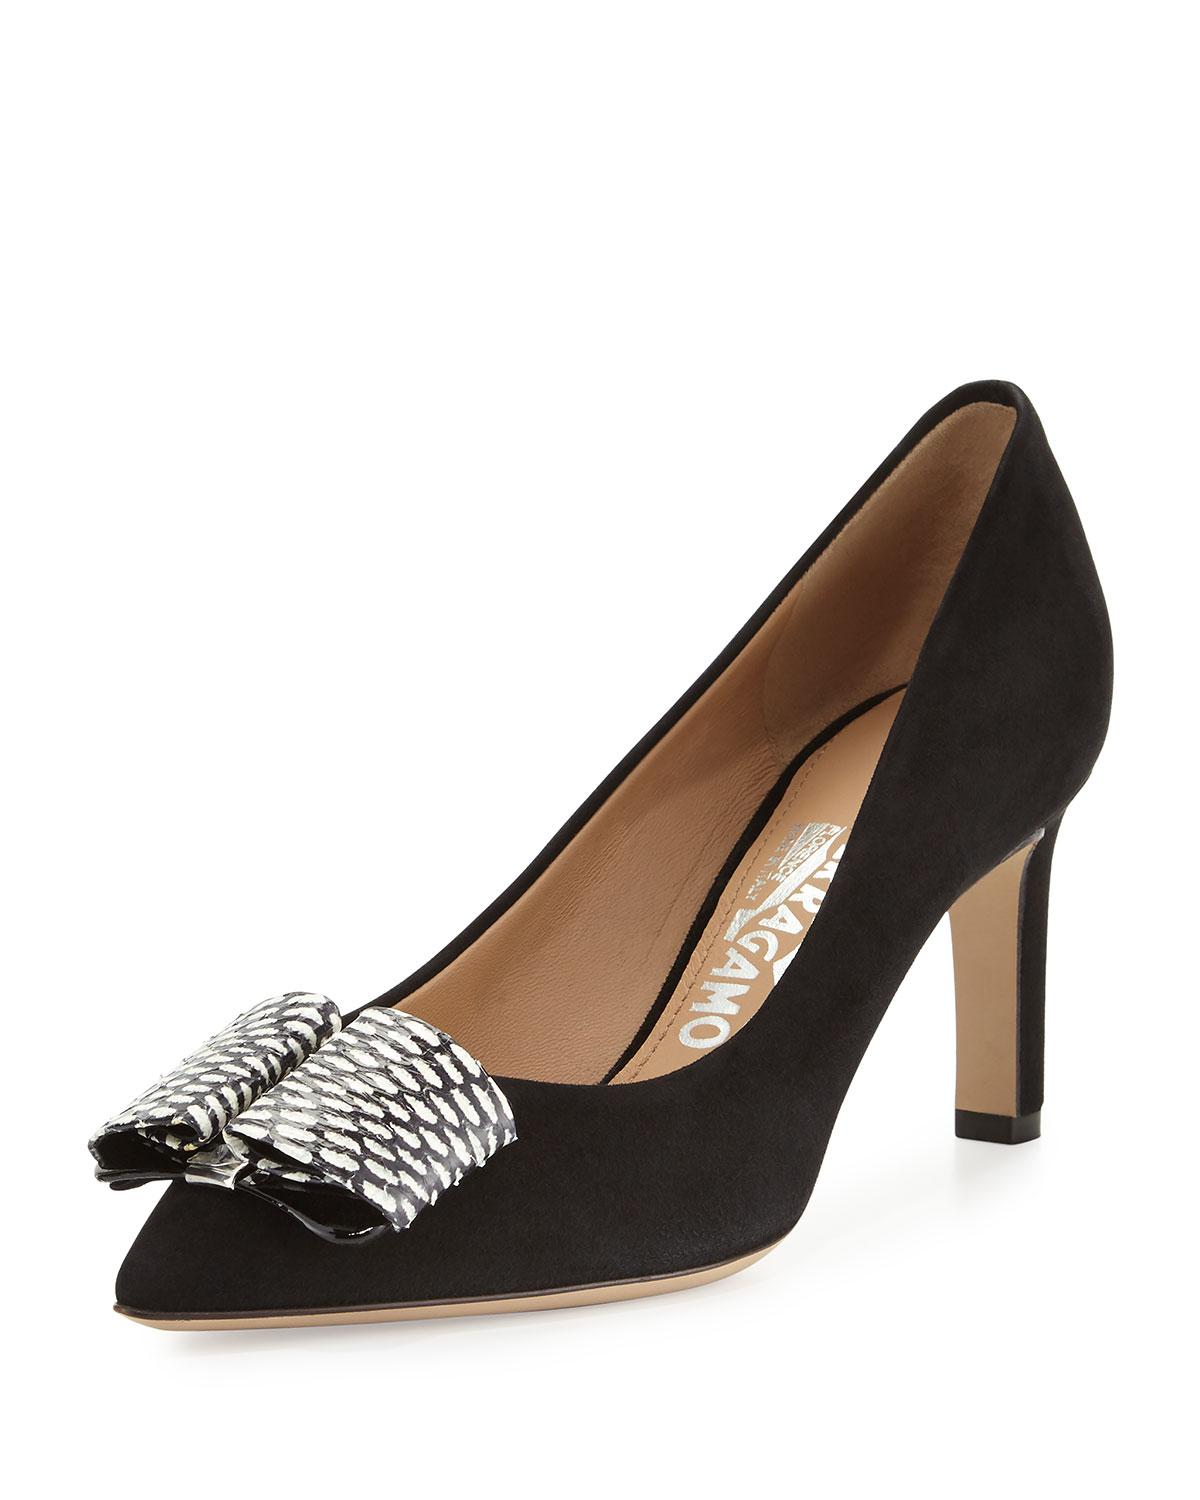 sale prices outlet new Salvatore Ferragamo Rounded Square-Toe Suede Pumps outlet tumblr 2015 new online official site sale online RcTyjibGLt